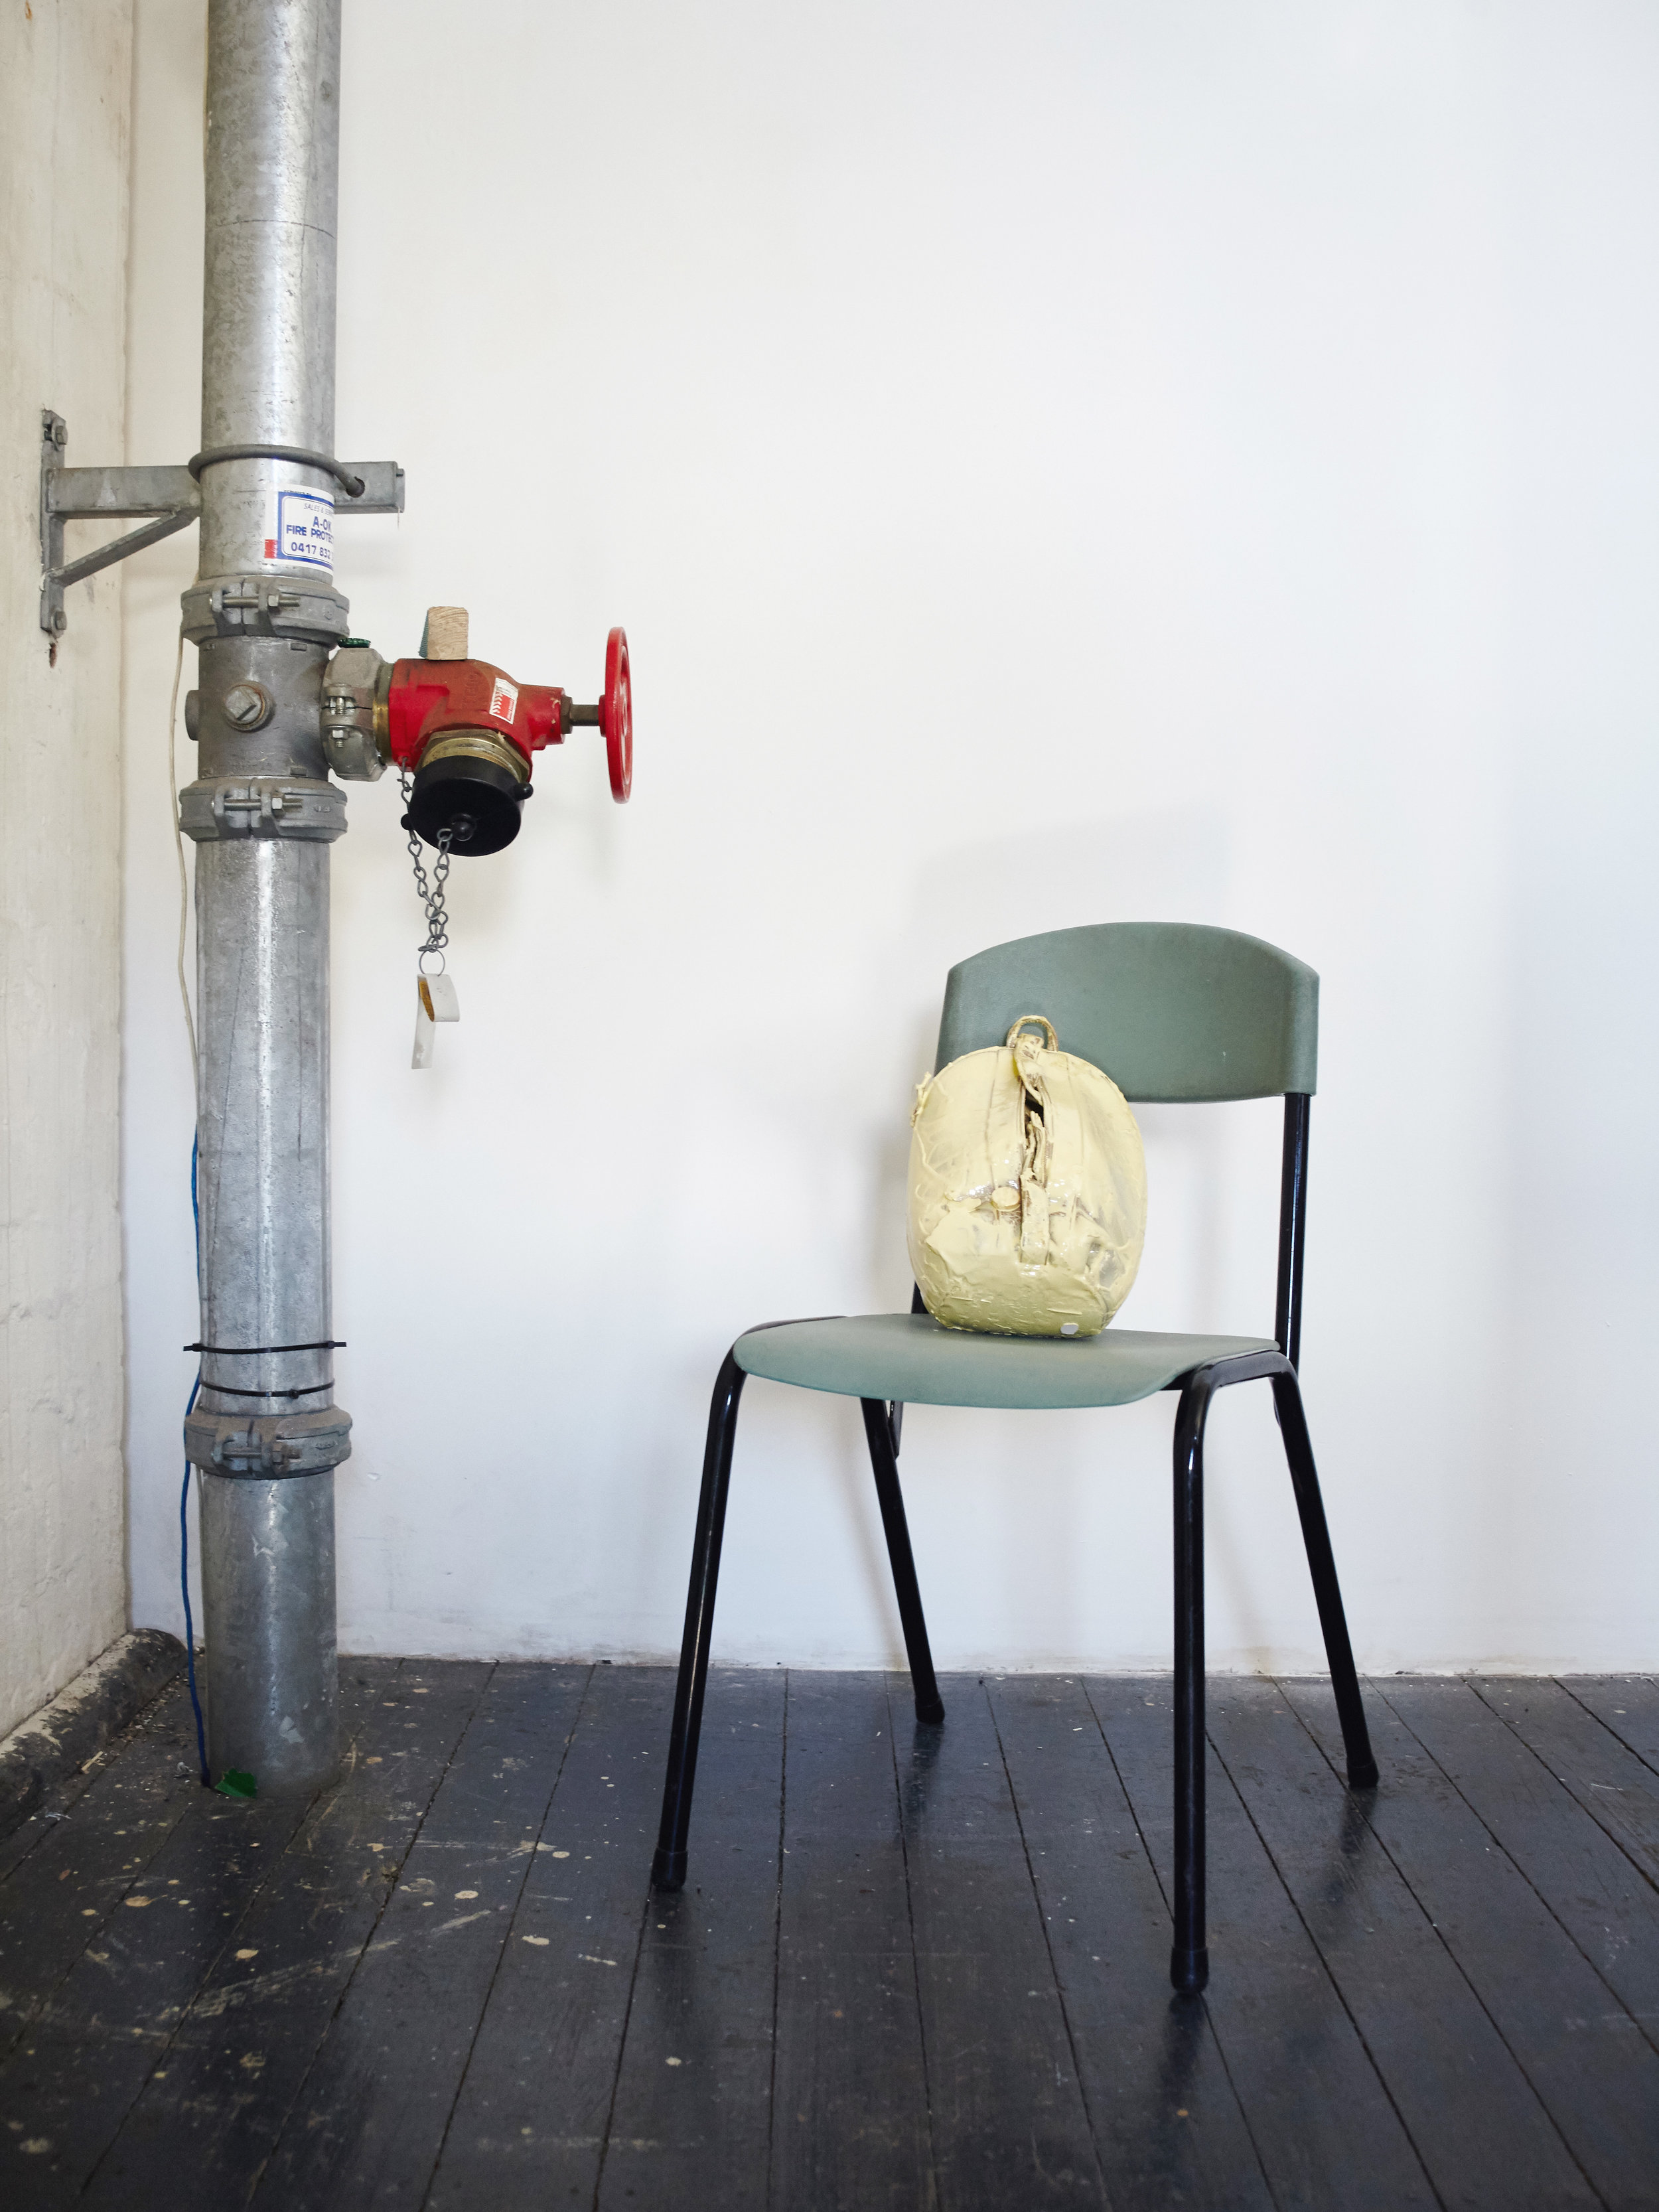 Elif Erkan  Romantic Escapism III – The Bistro Bag  (2014) polyvinyl, acrylic paint, resin, bistro chair, Dimensions Variable Courtesy: Artist / Artun Alaska Arasli, Amsterdam, Netherlands